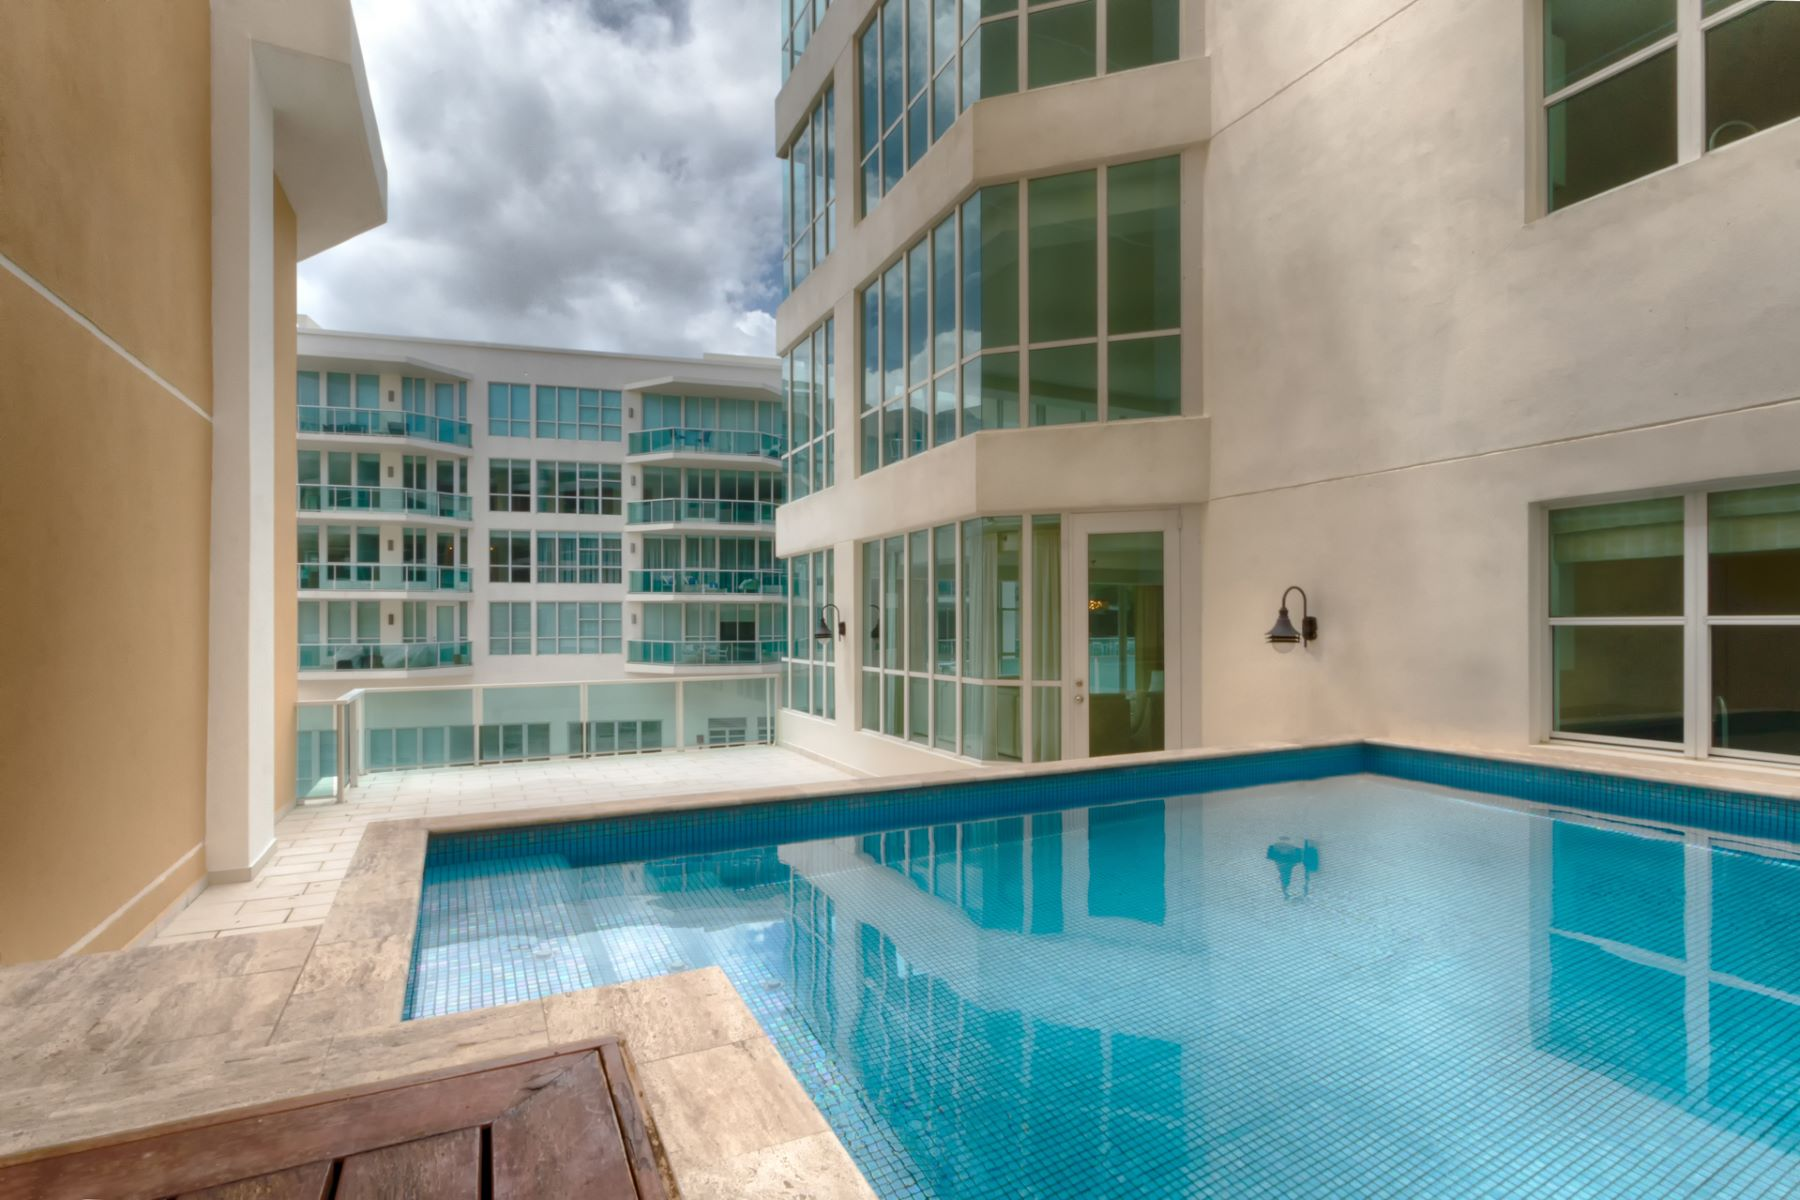 Additional photo for property listing at Exciting Sixth Floor Residence with Private Pool at Bahia Plaza 25 Munoz Rivera Avenue apt 601 San Juan, Puerto Rico 00901 Puerto Rico